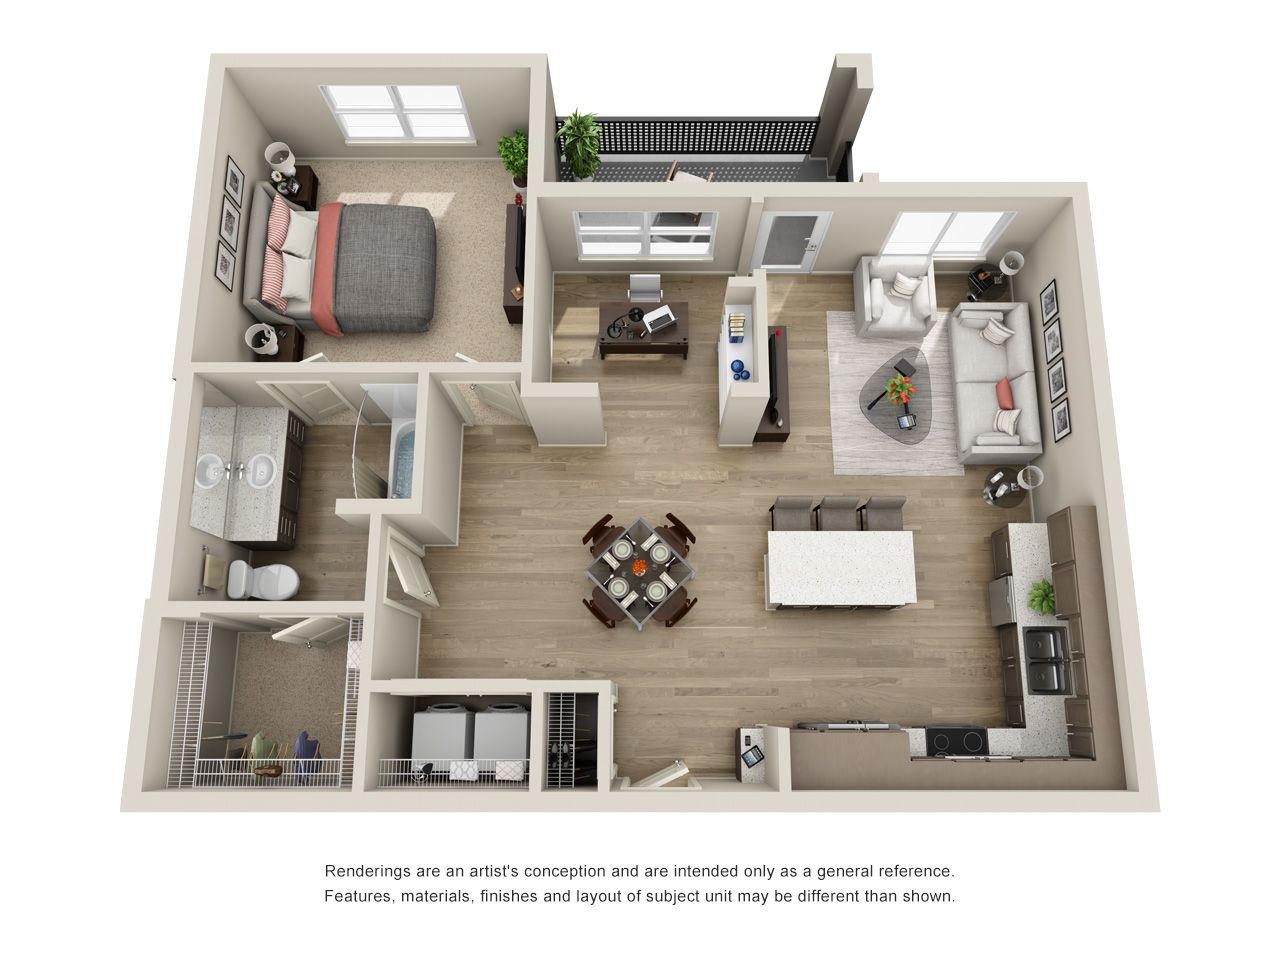 A5 1 Bedroom Den 947 Sq Ft Sims House Plans House Plans Apartment Floor Plans